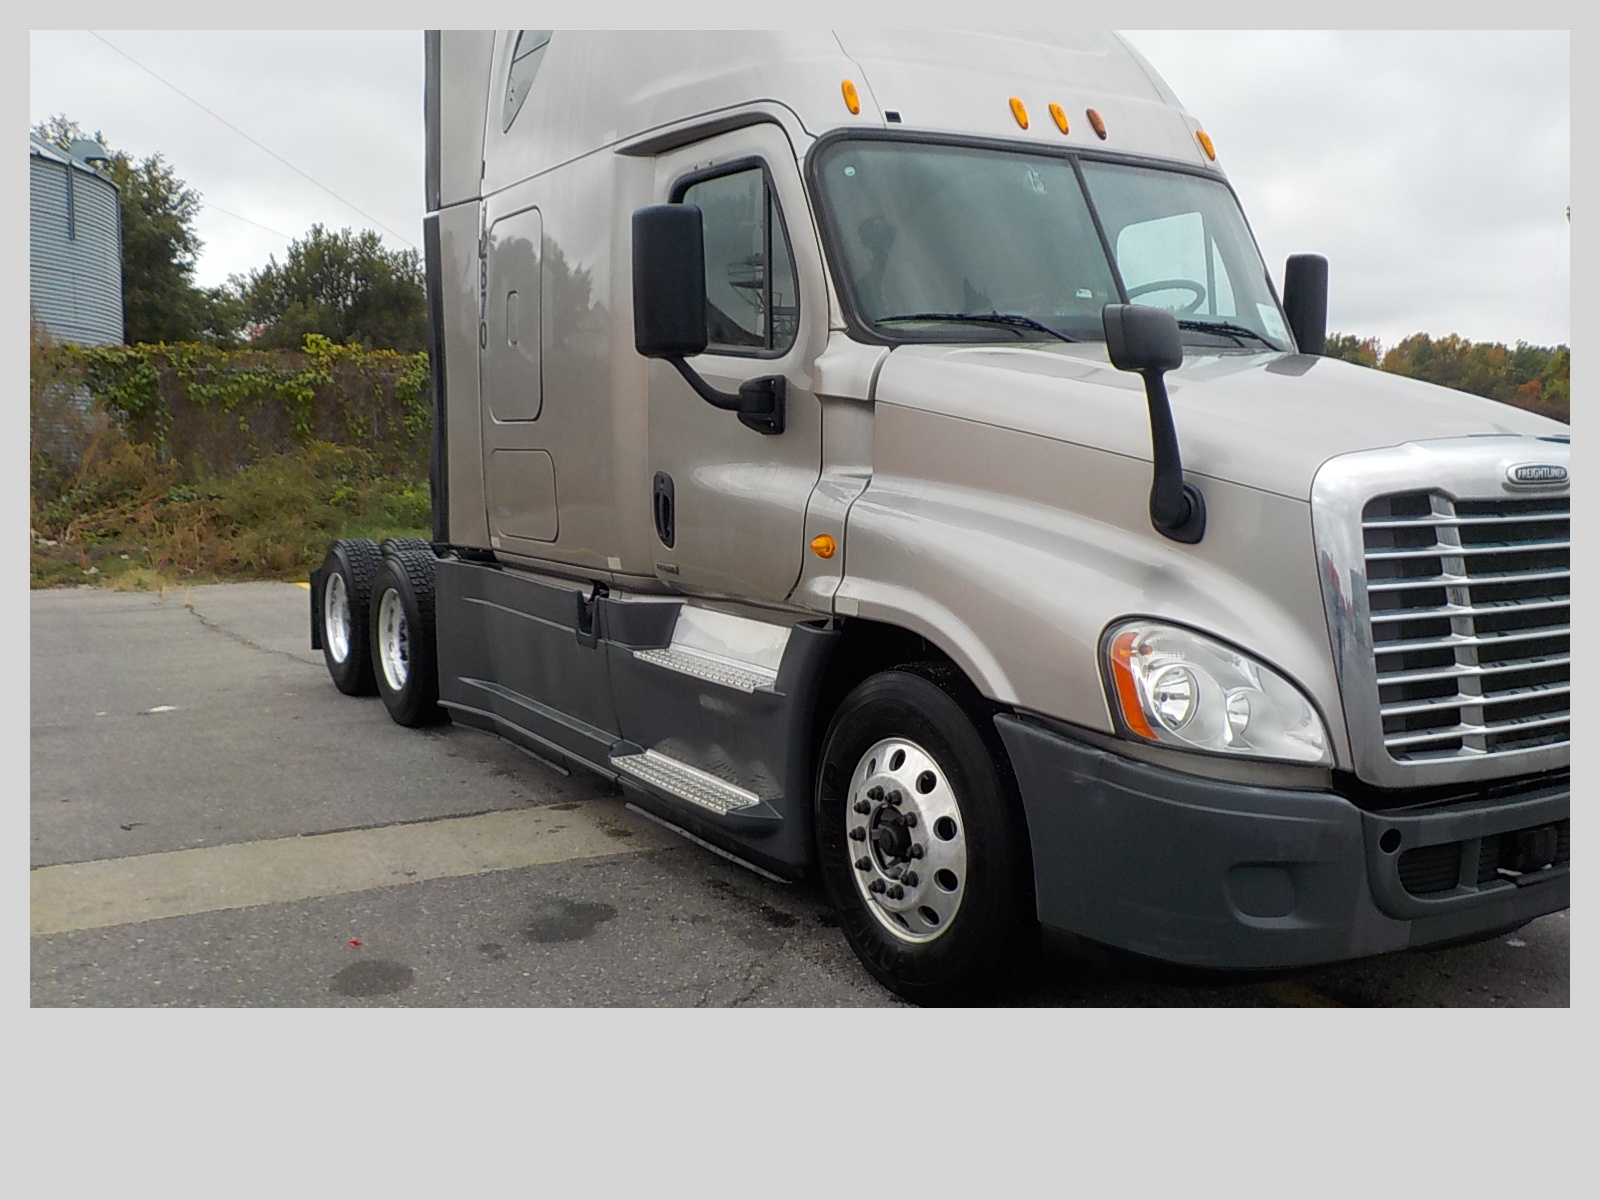 USED 2014 FREIGHTLINER CASCADIA SLEEPER TRUCK #83866